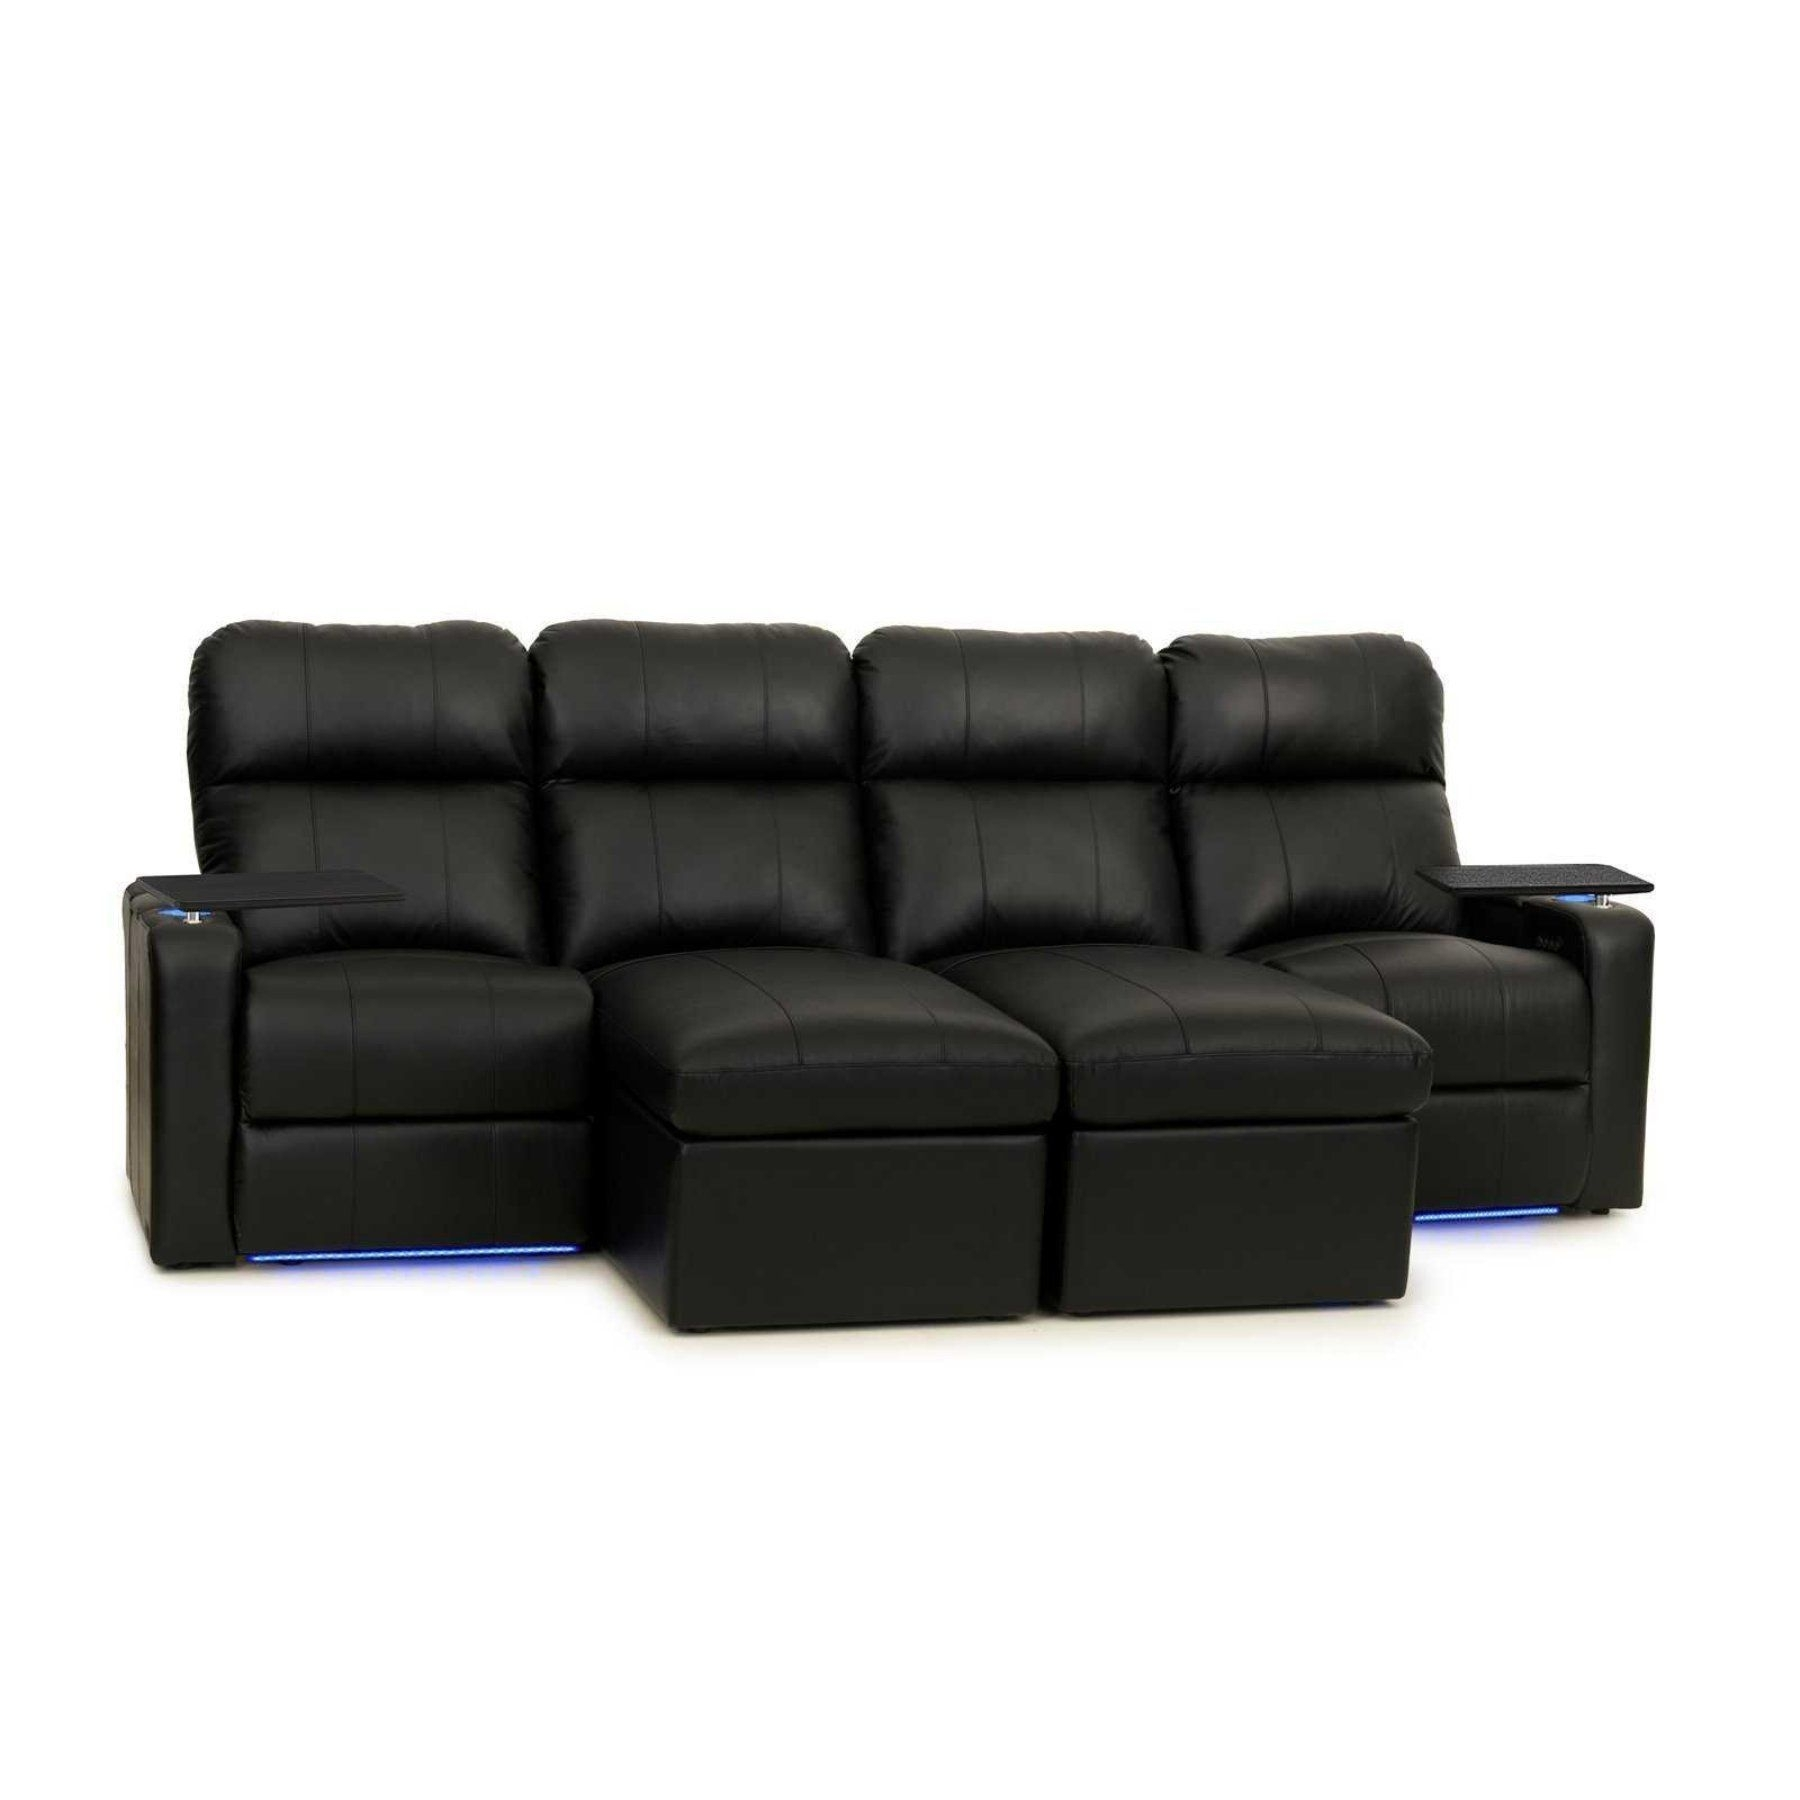 Read About Twin Bed. Please Click Here To Learn More.. Enjoy The in Tenny Dark Grey 2 Piece Right Facing Chaise Sectionals With 2 Headrest (Image 20 of 30)